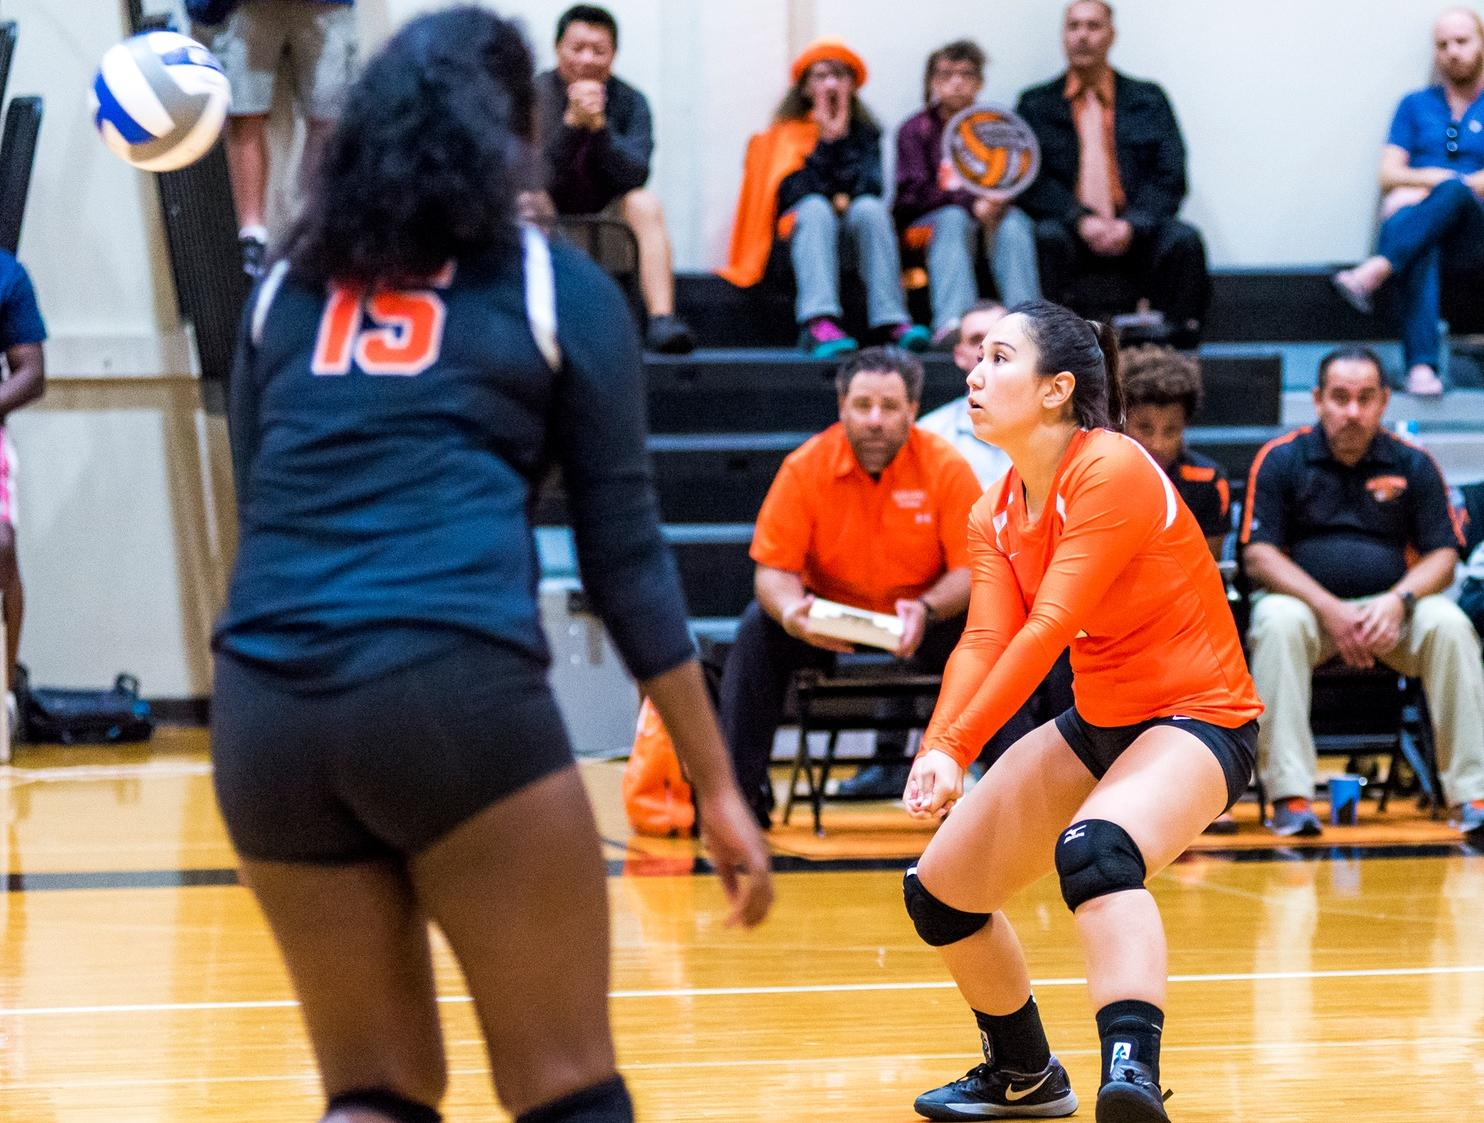 Volleyball Sees Several Contributors in La Verne Match